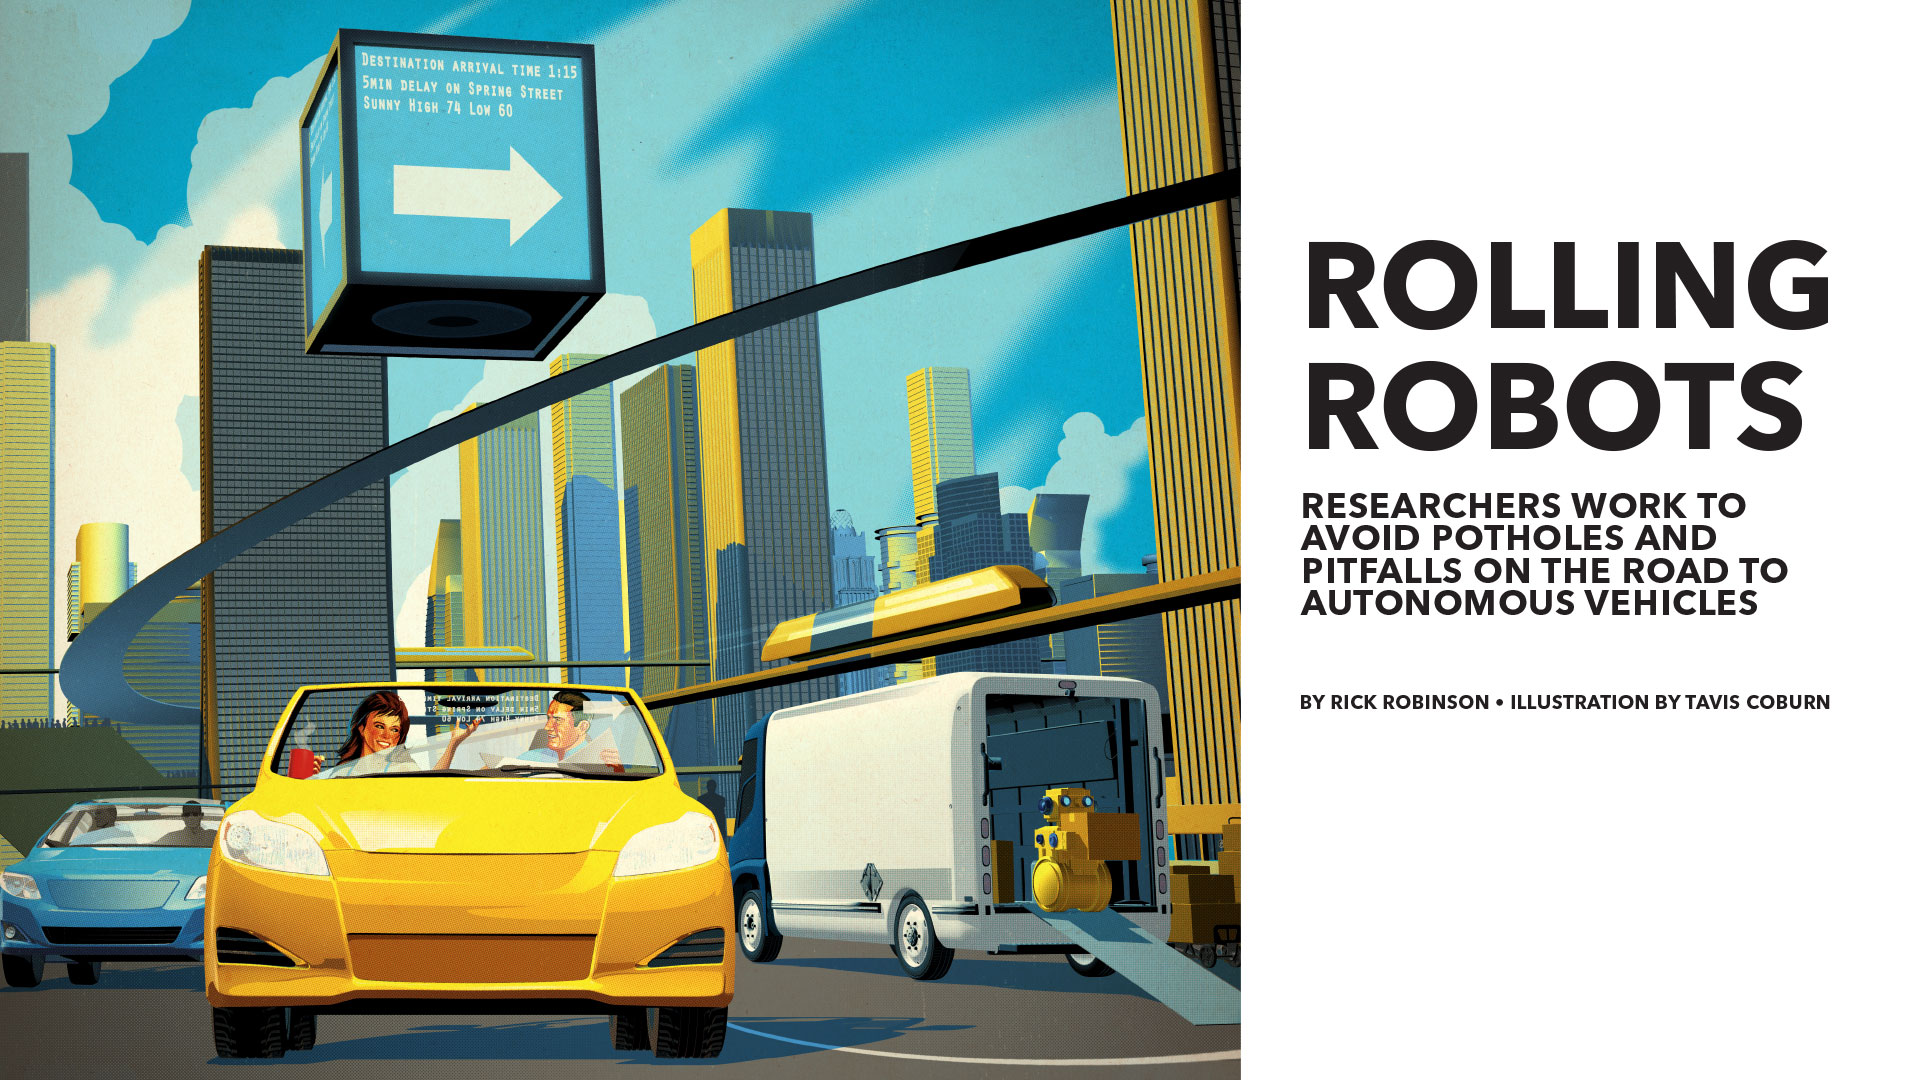 Headline - Rolling Robots - Researchers work to avoid potholes and pitfalls on the road to autonomous vehicles - By Rick Robinson • Illustration by Tavis Coburn